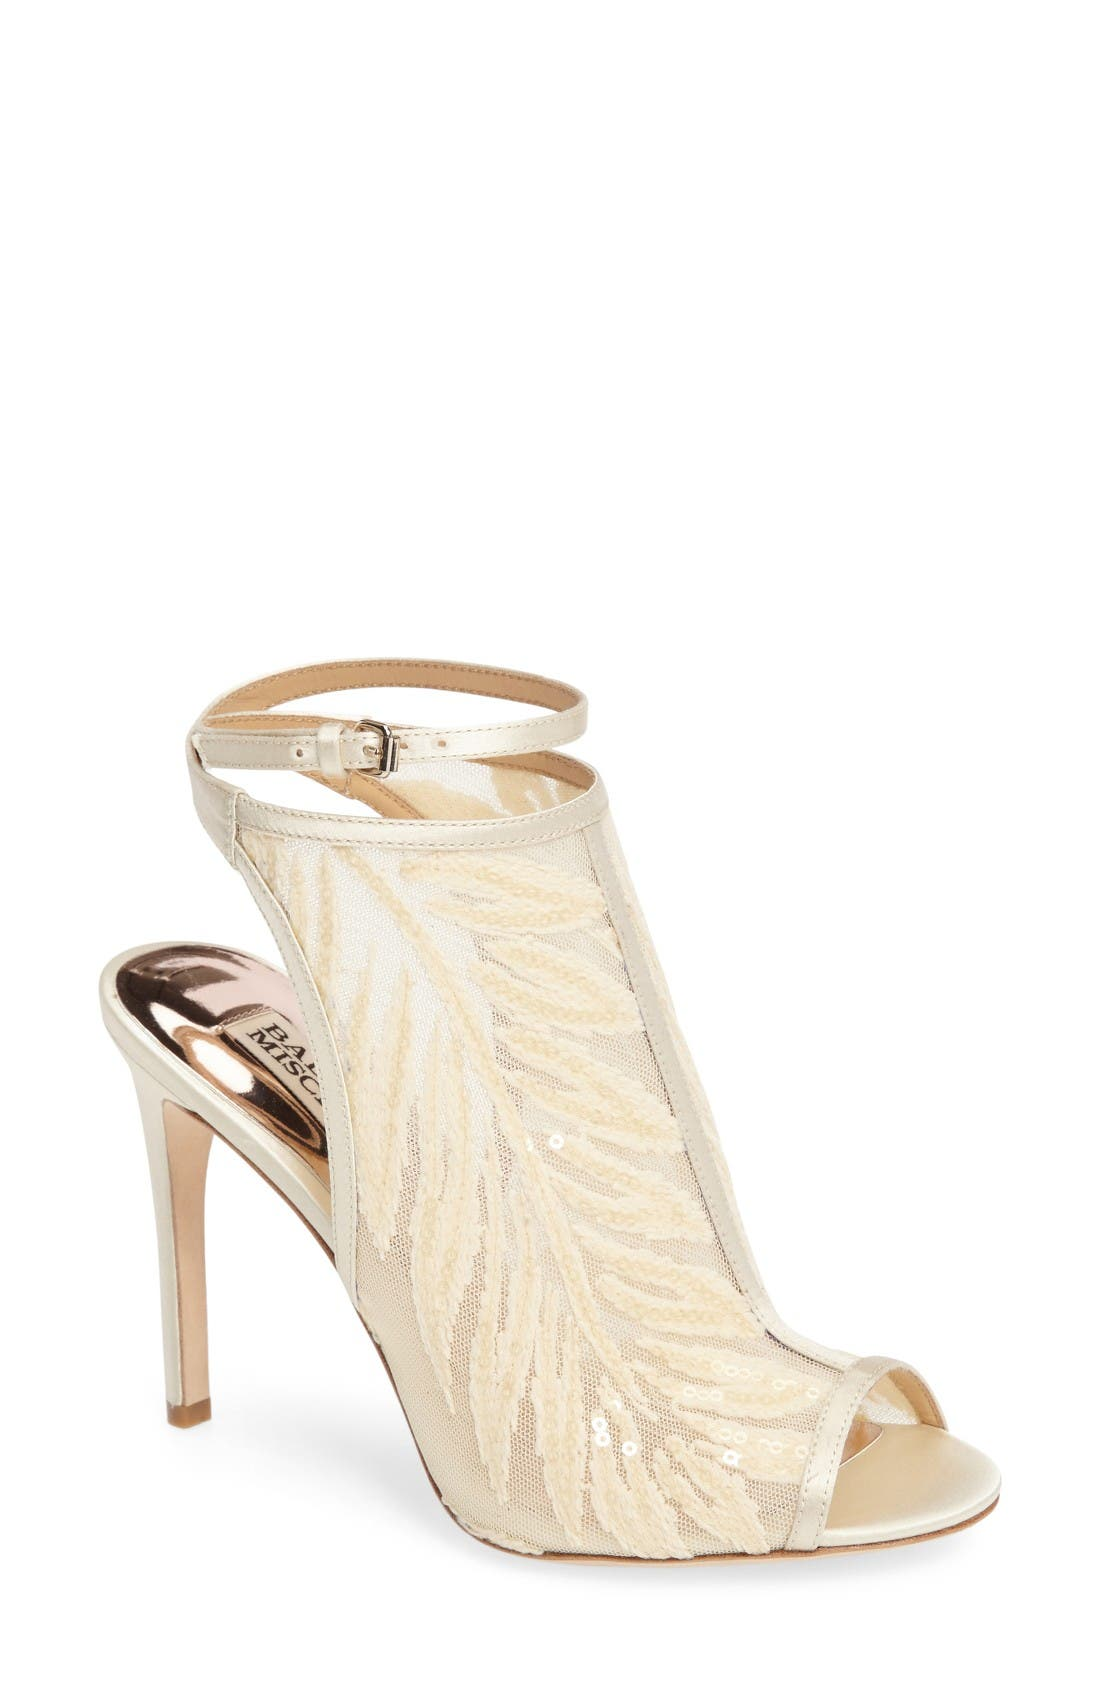 Alternate Image 1 Selected - Badgley Mischka Blakely Sequin Illusion Sandal (Women)